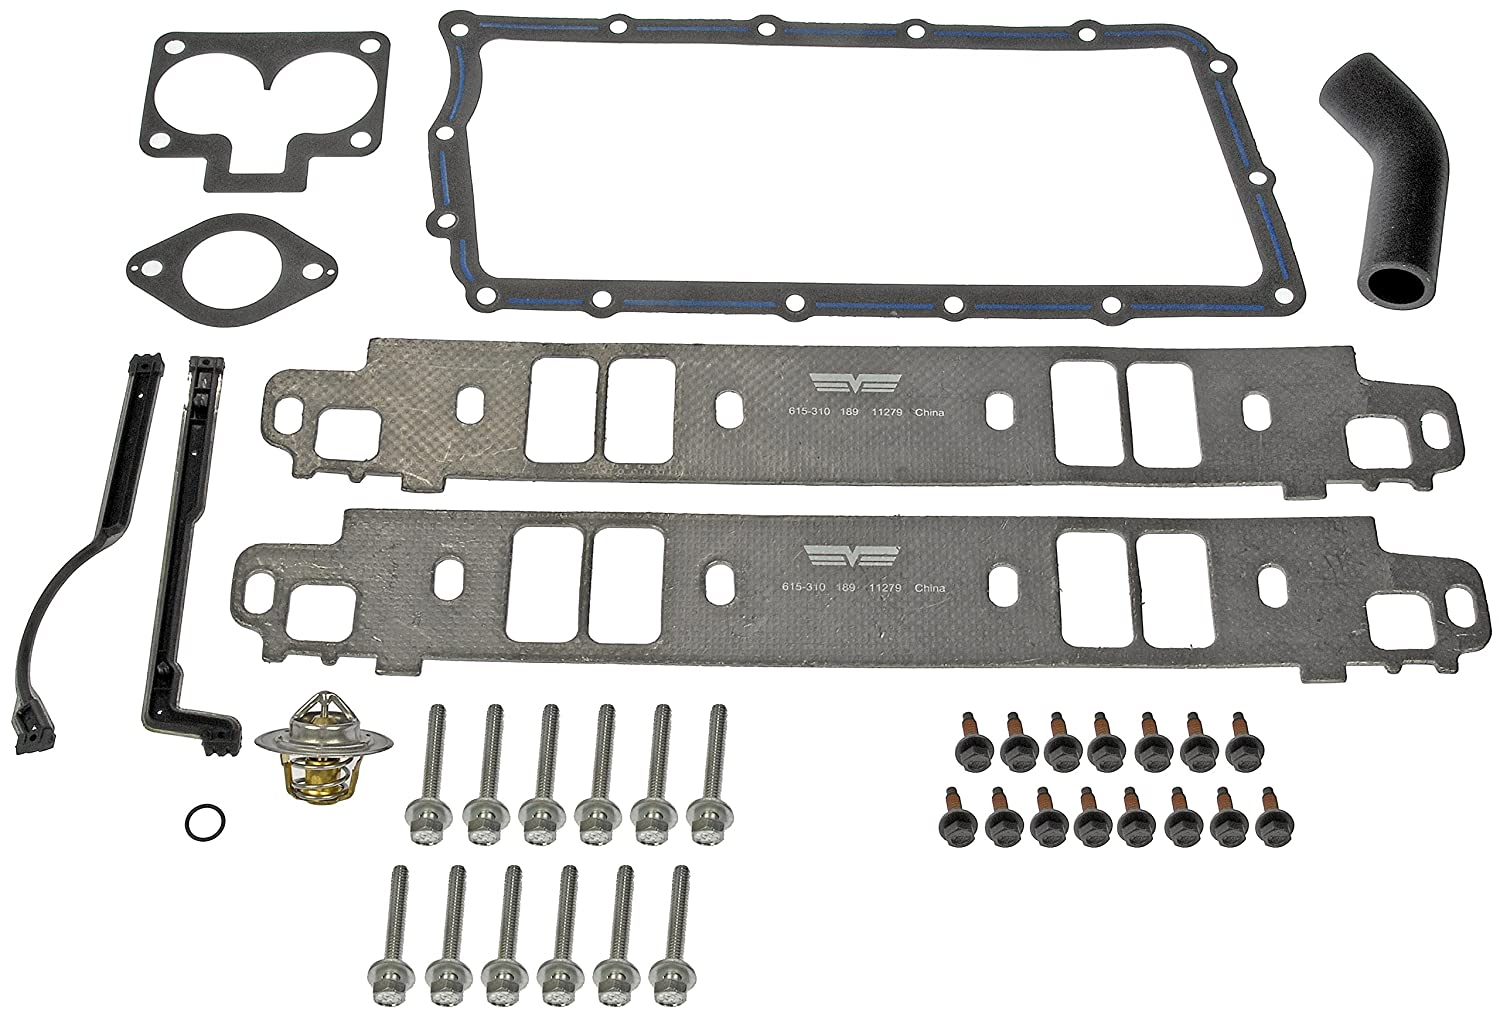 Dorman 615-310 Dodge Jeep Intake Manifold Gasket Kit Dorman - OE Solutions DOR615310